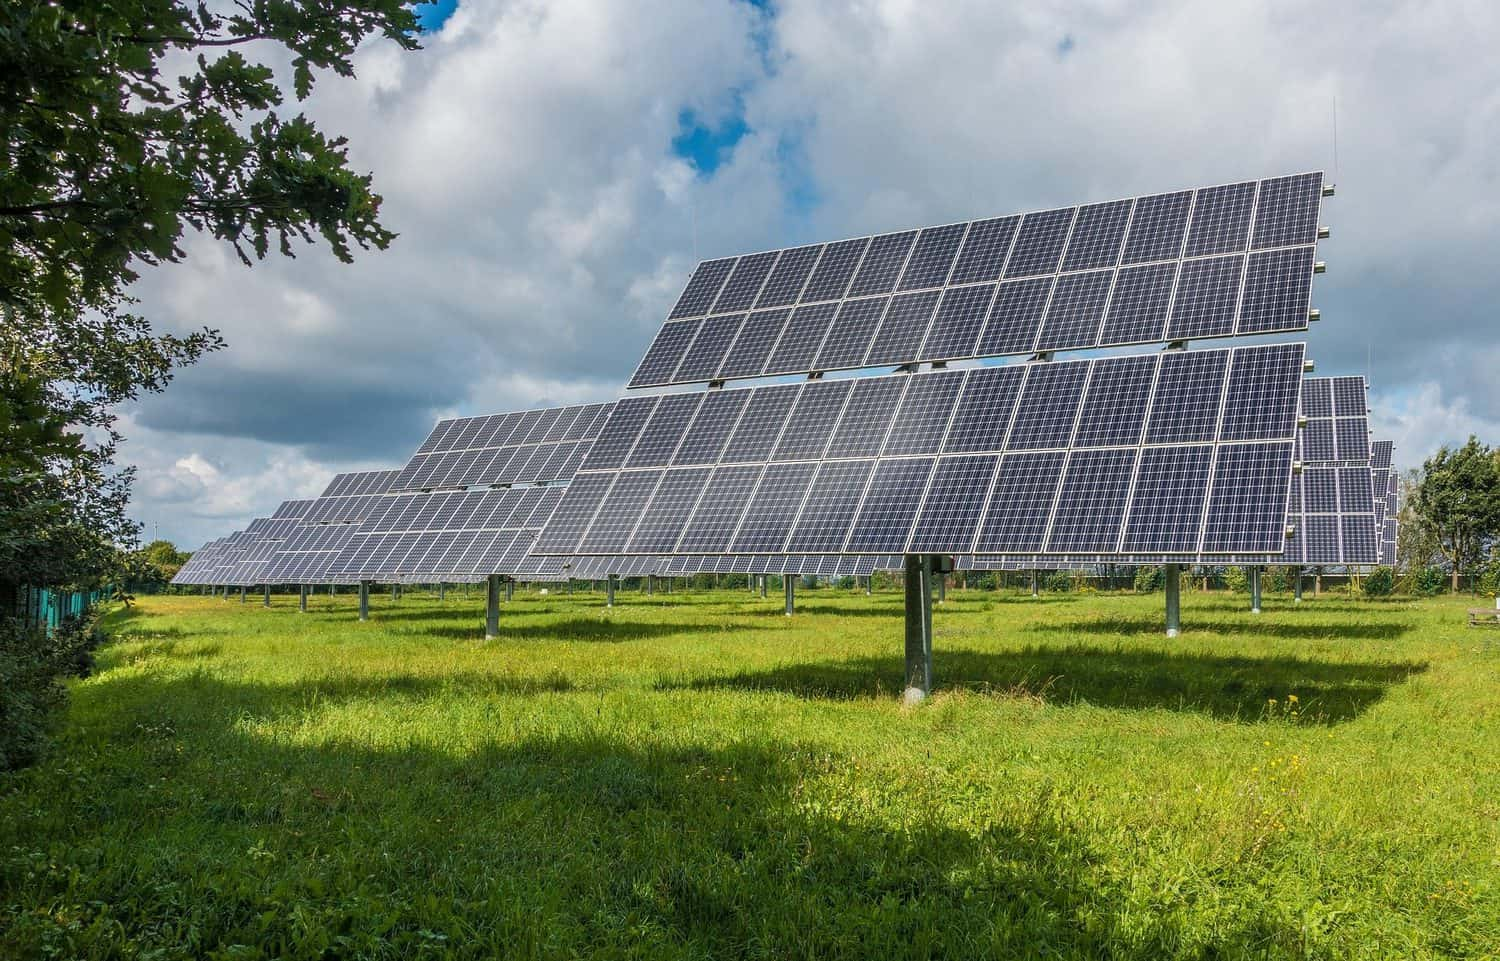 A dawn for South African agriculture as solar energy becomes affordable, even for small-scale farmers. Photo: Supplied.